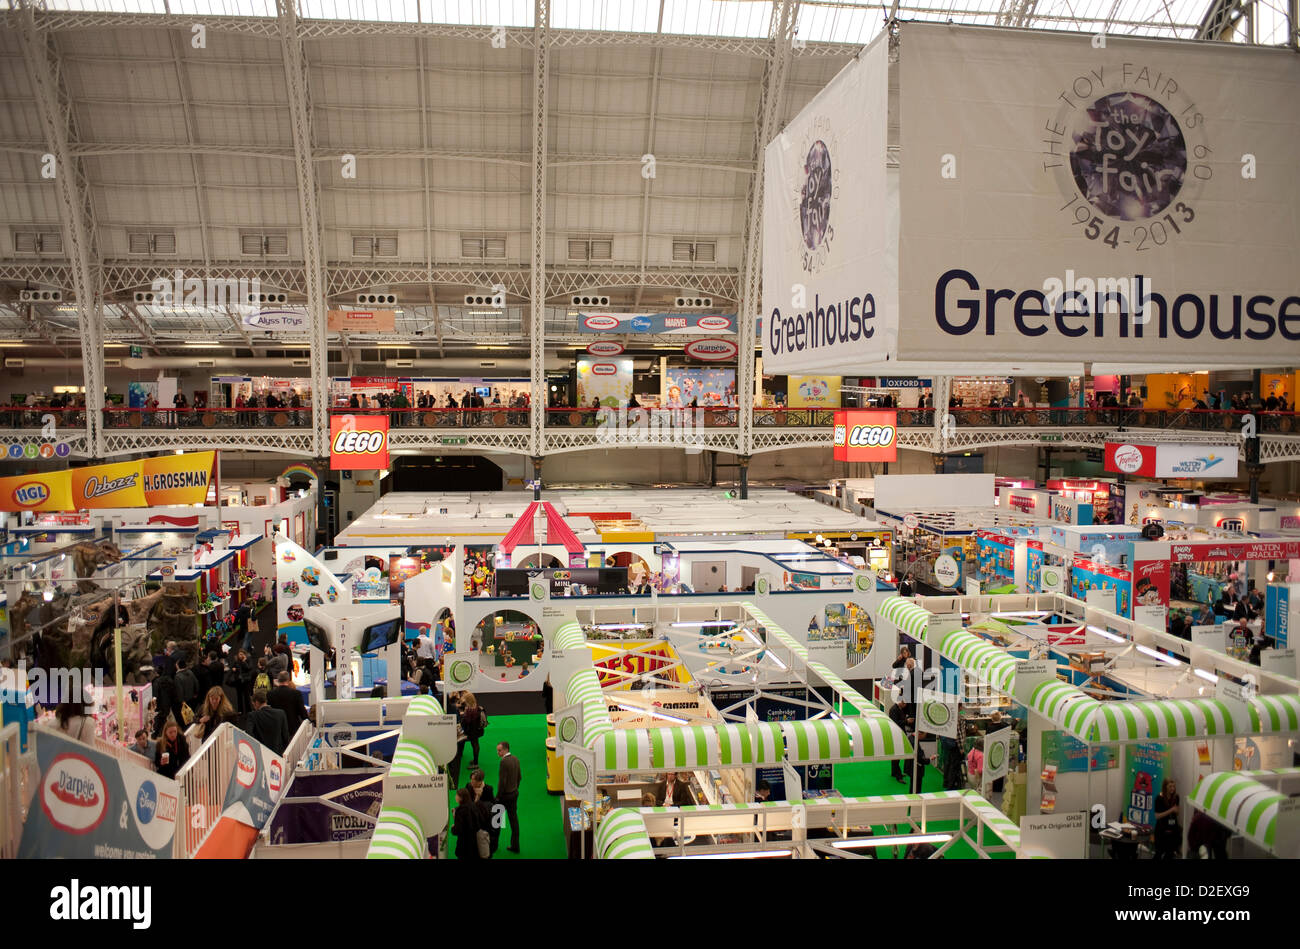 London, UK. 22nd January 2013. Organisers: The British Toy & Hobby Association. The Toy Fair opens today in - Stock Image